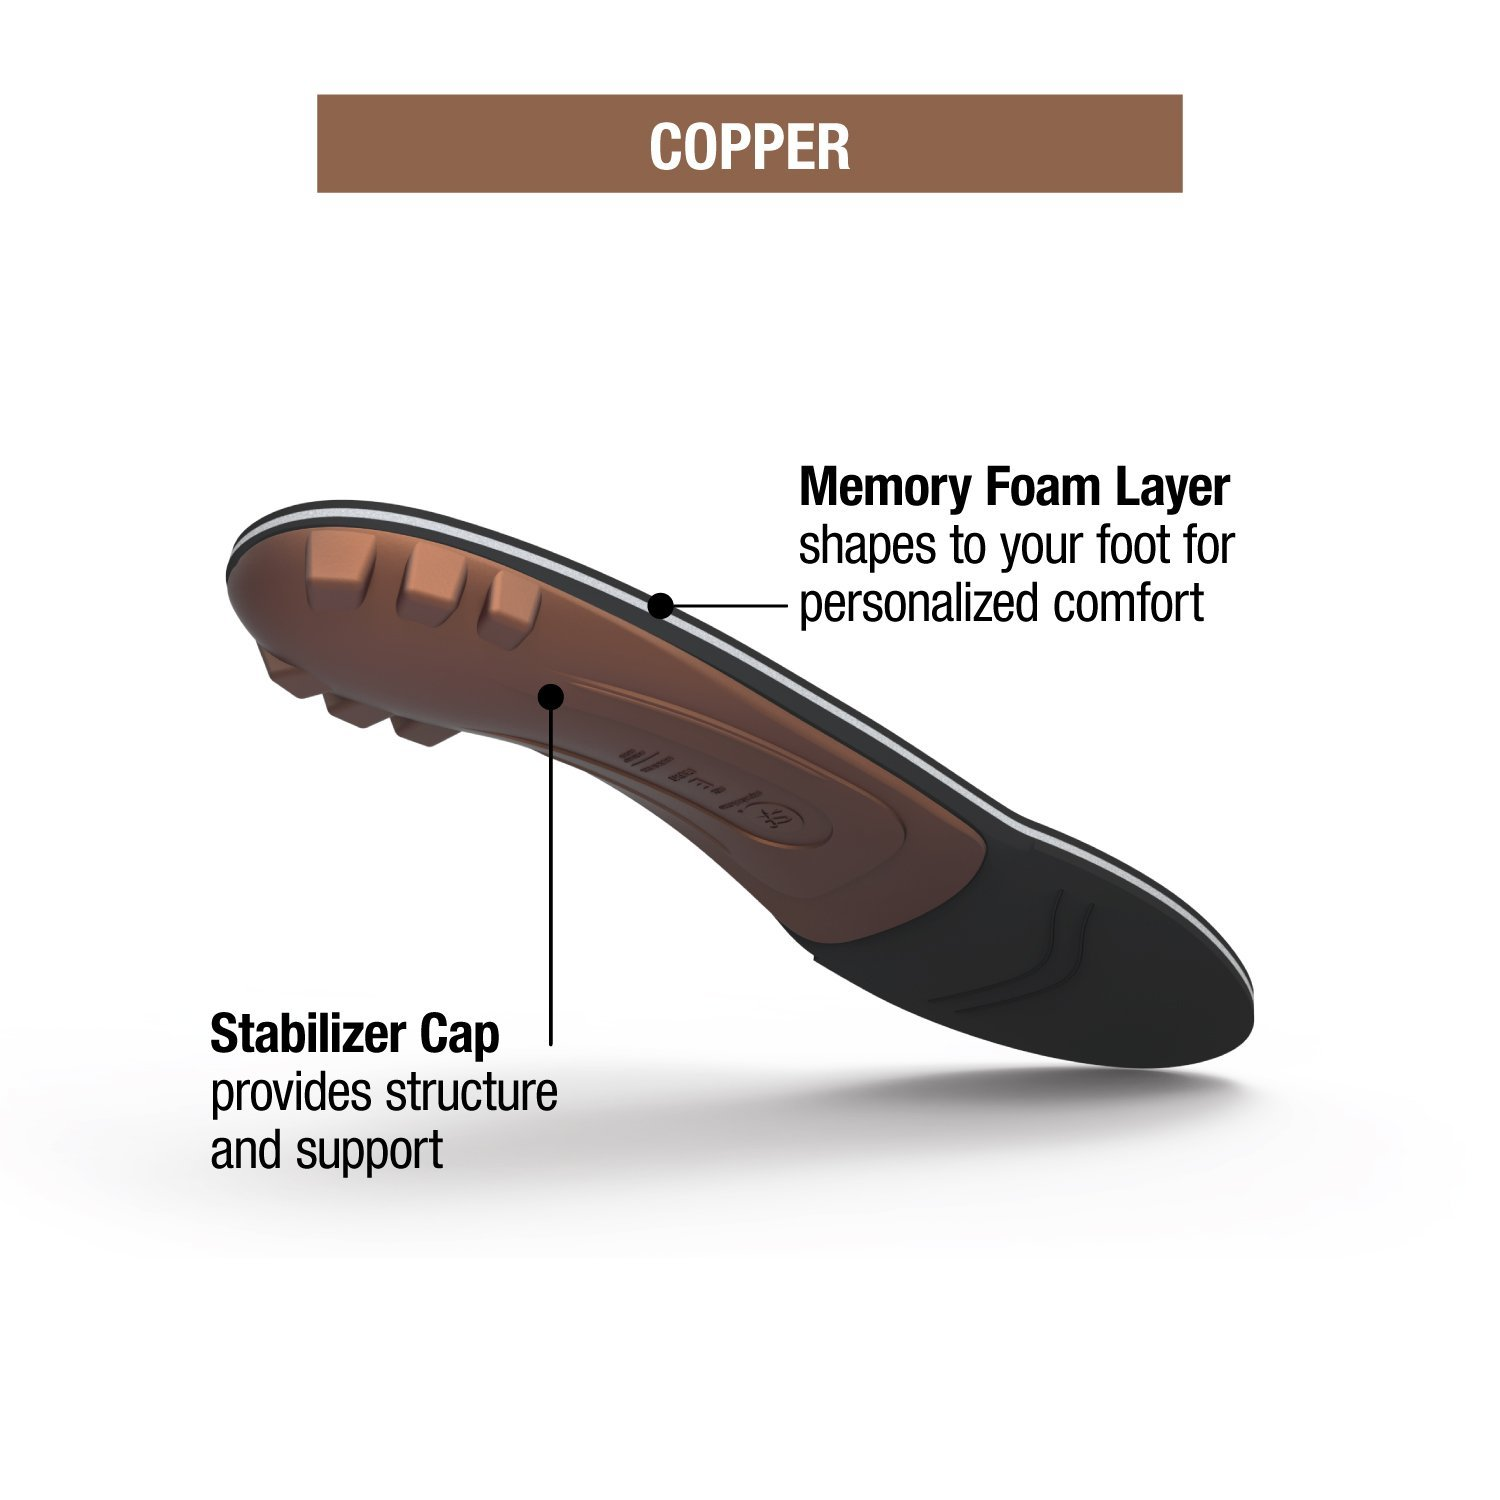 Superfeet COPPER, Memory Foam Comfort Orthotic Insoles, Unisex, Copper, Small/6.5-8 Wmns/5.5-7 Mens by Superfeet (Image #3)